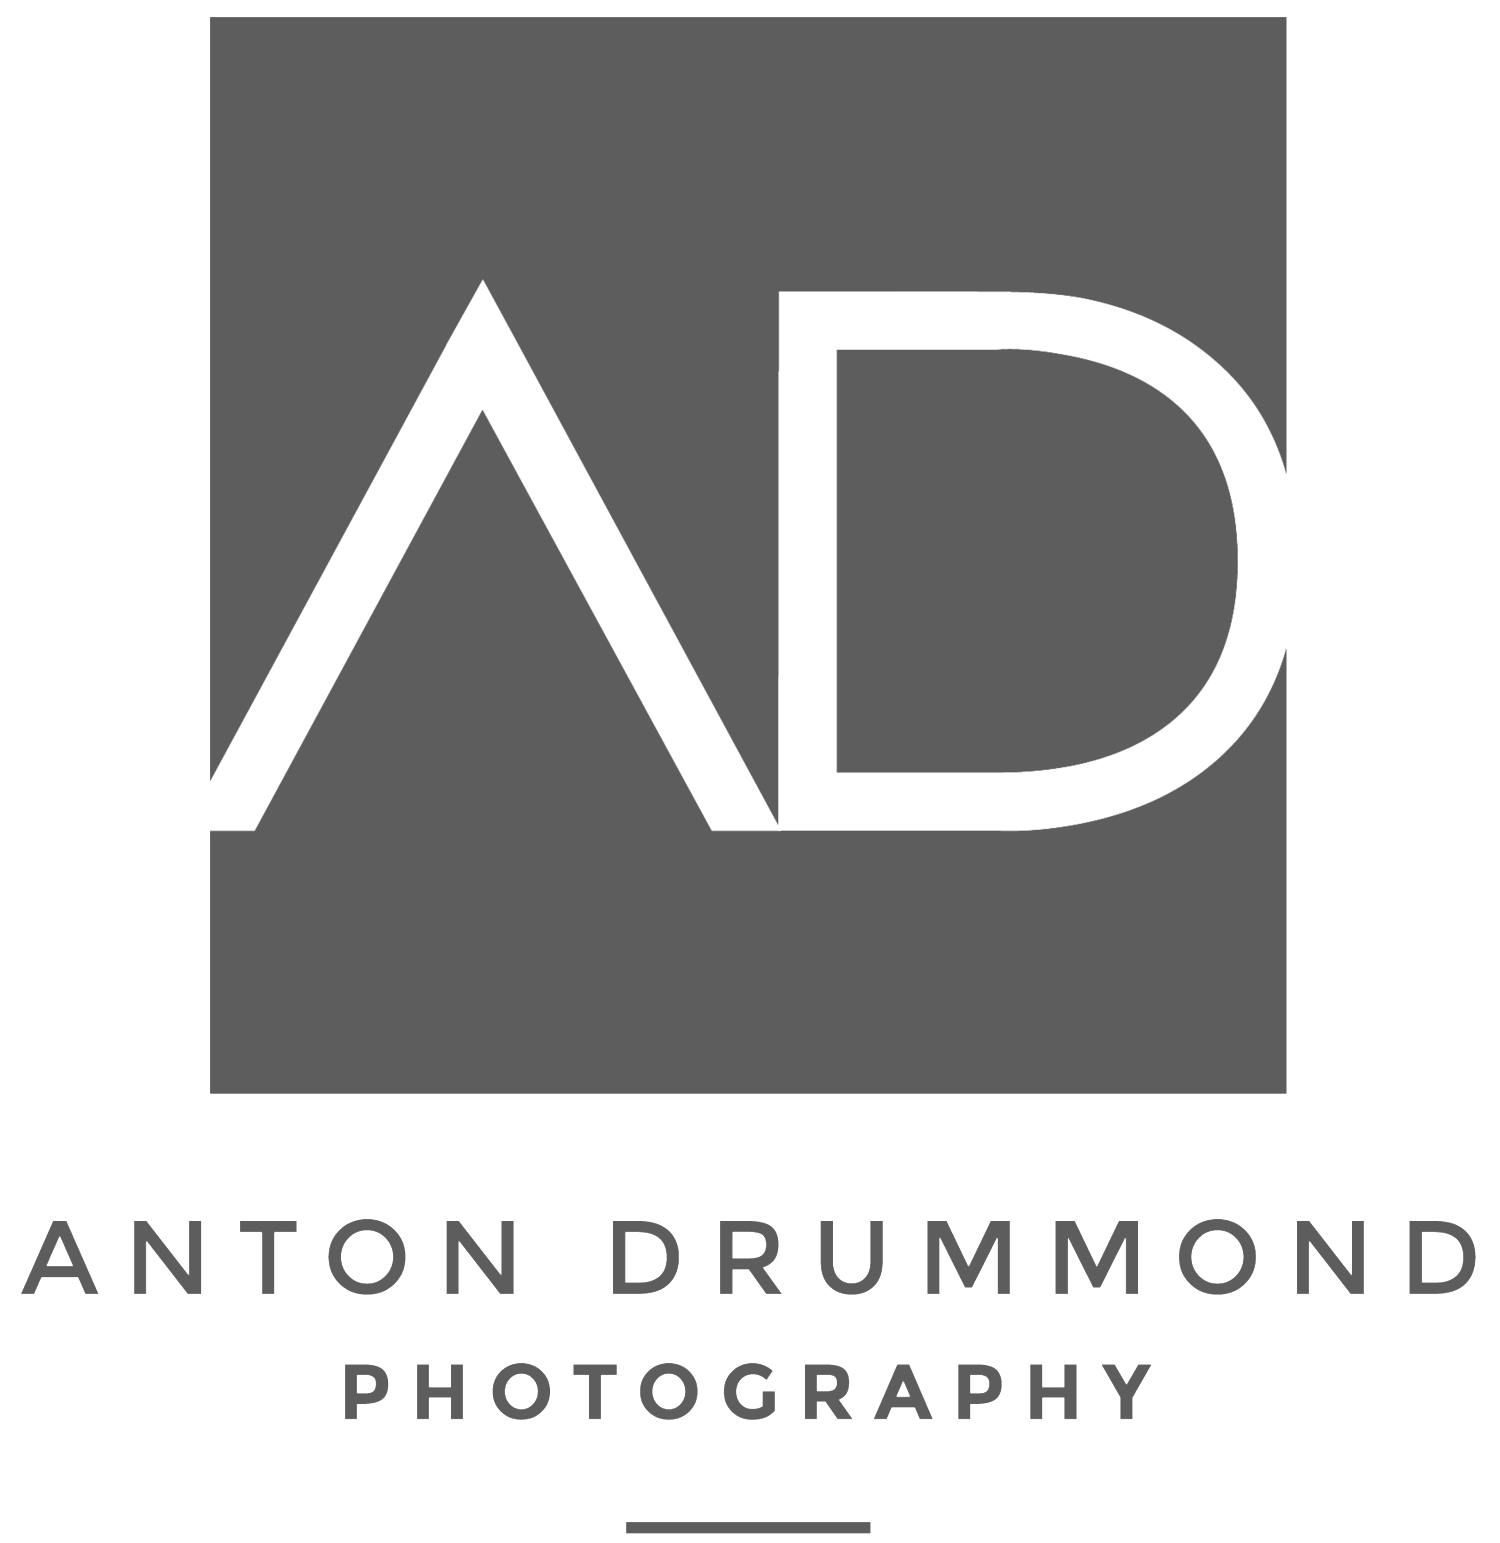 Anton Drummond Photography: Philadelphia Wedding Photographer